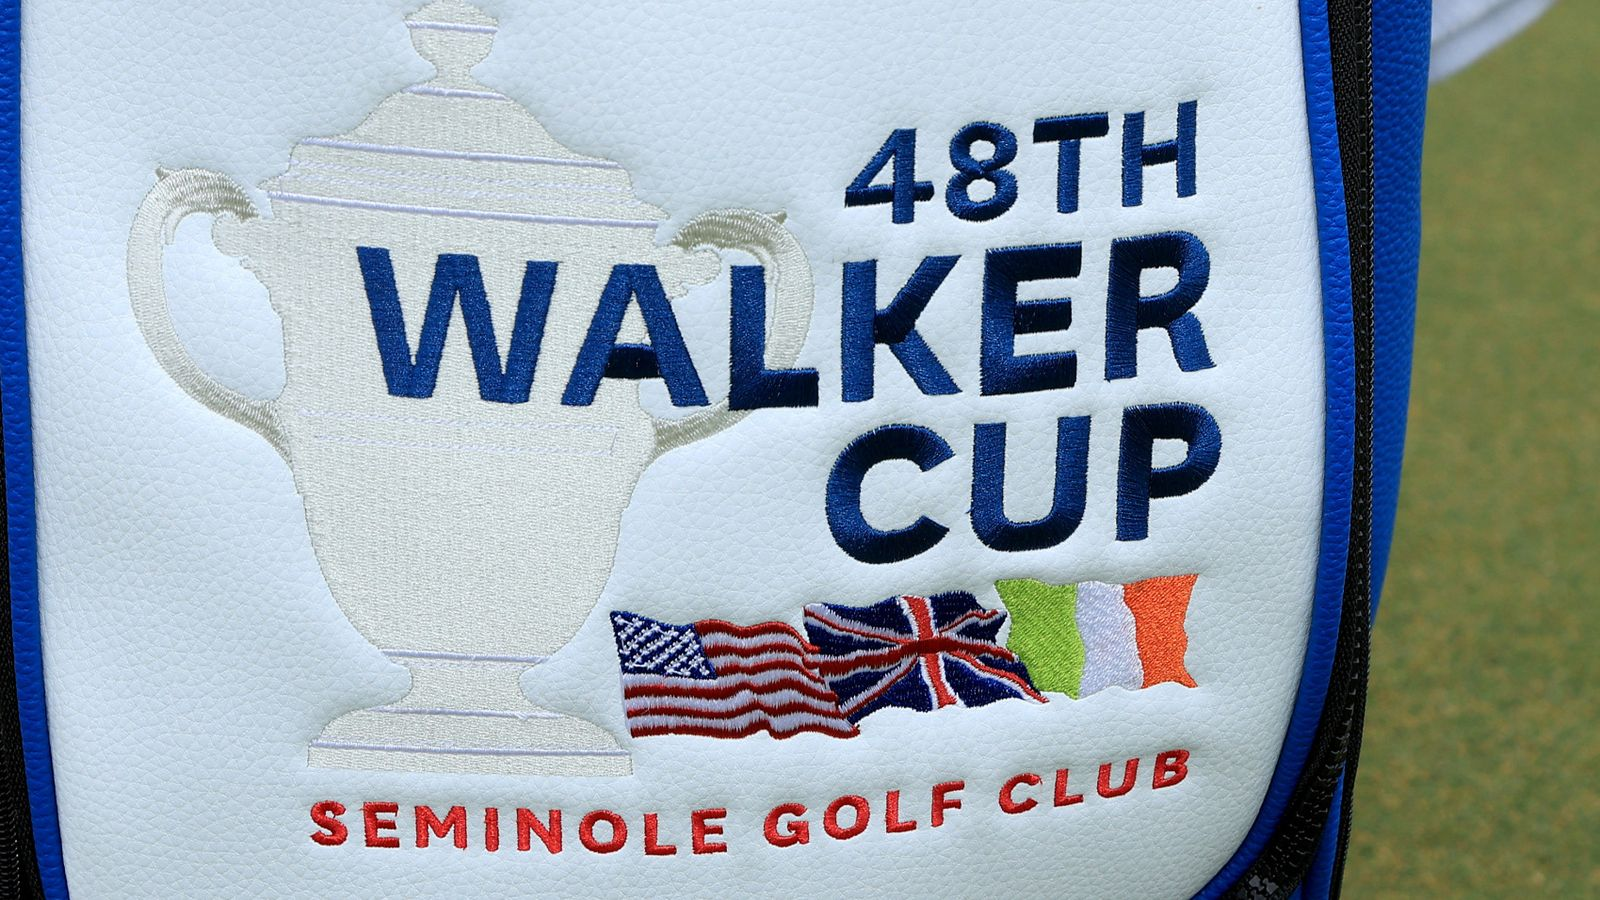 Walker Cup 2021: Several players from both teams hit by food poisoning ahead of biennial contest